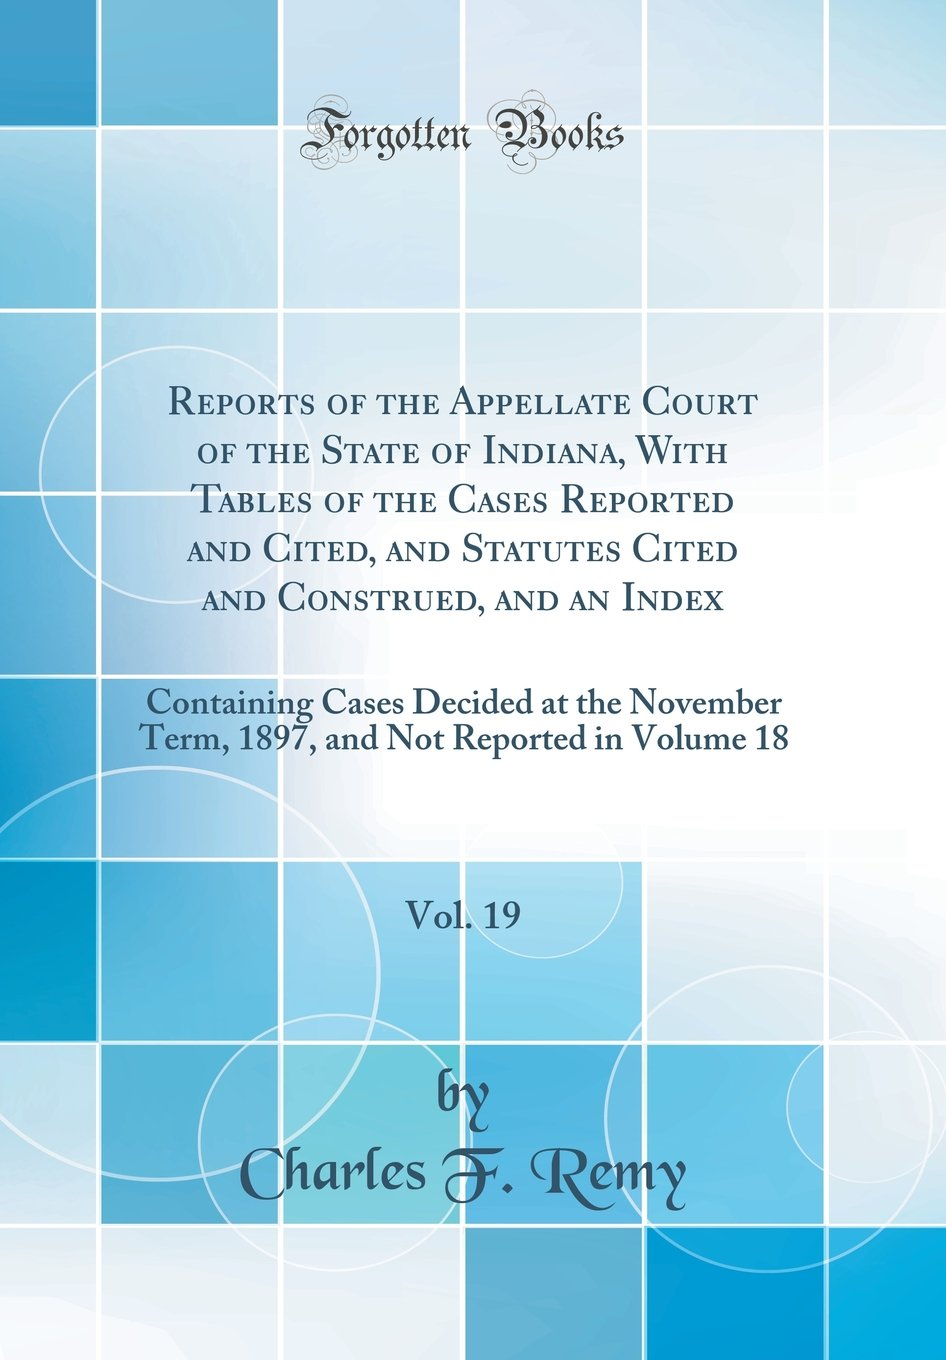 Reports of the Appellate Court of the State of Indiana, with Tables of the Cases Reported and Cited, and Statutes Cited and Construed, and an Index, ... Term, 1897, and Not Reported in Volume 18 pdf epub